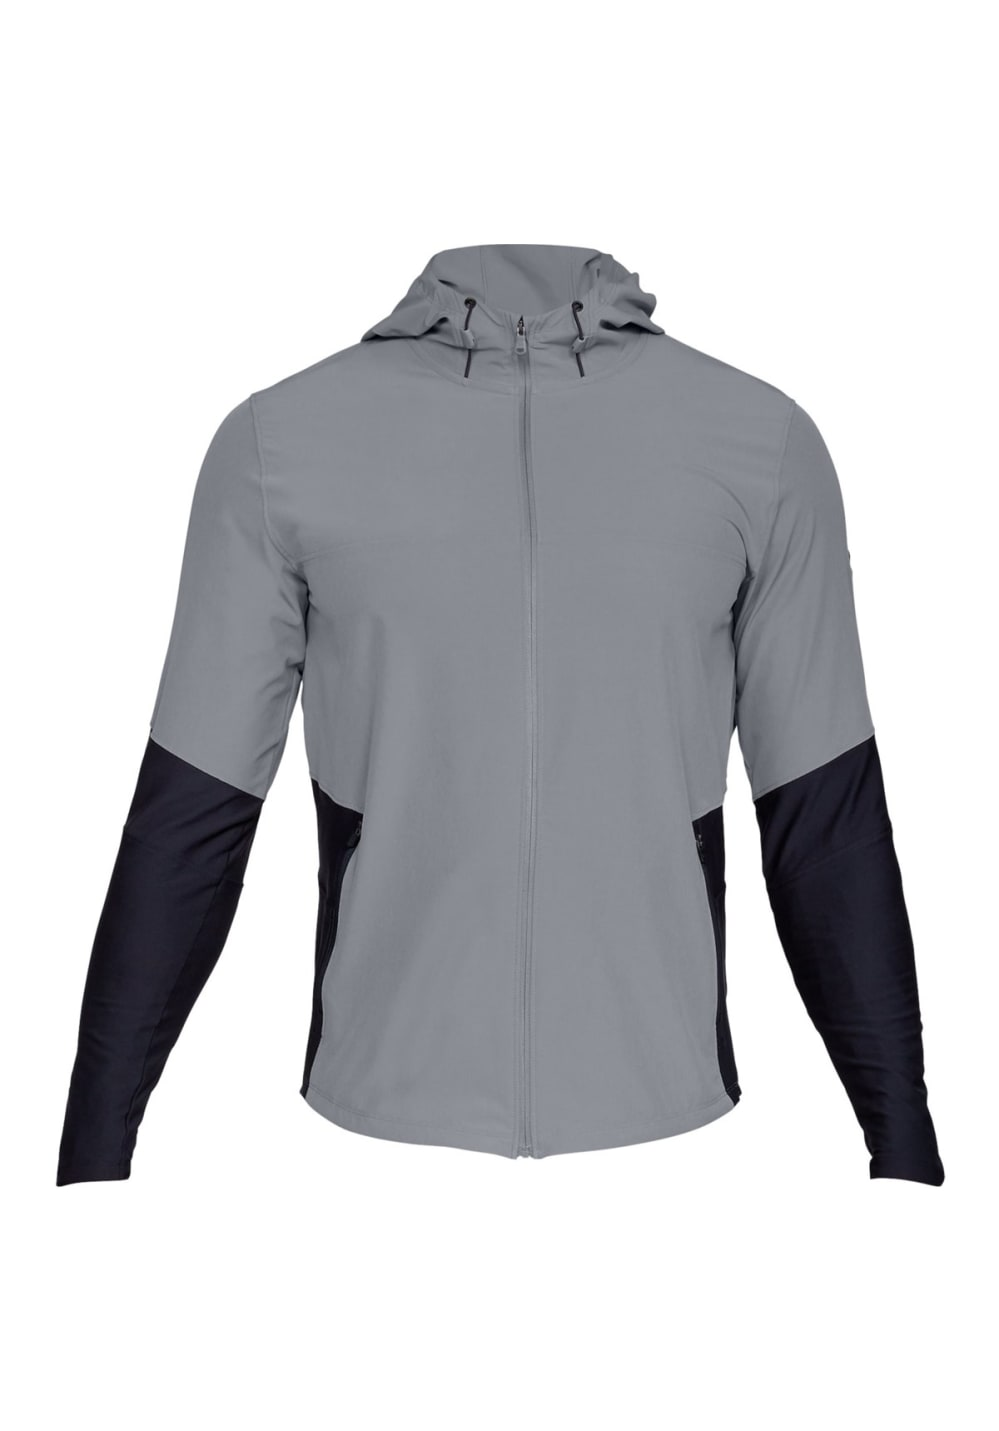 Under Armour Threadborne Vanish Jacket - Laufjacken für Herren - Grau, Gr. L